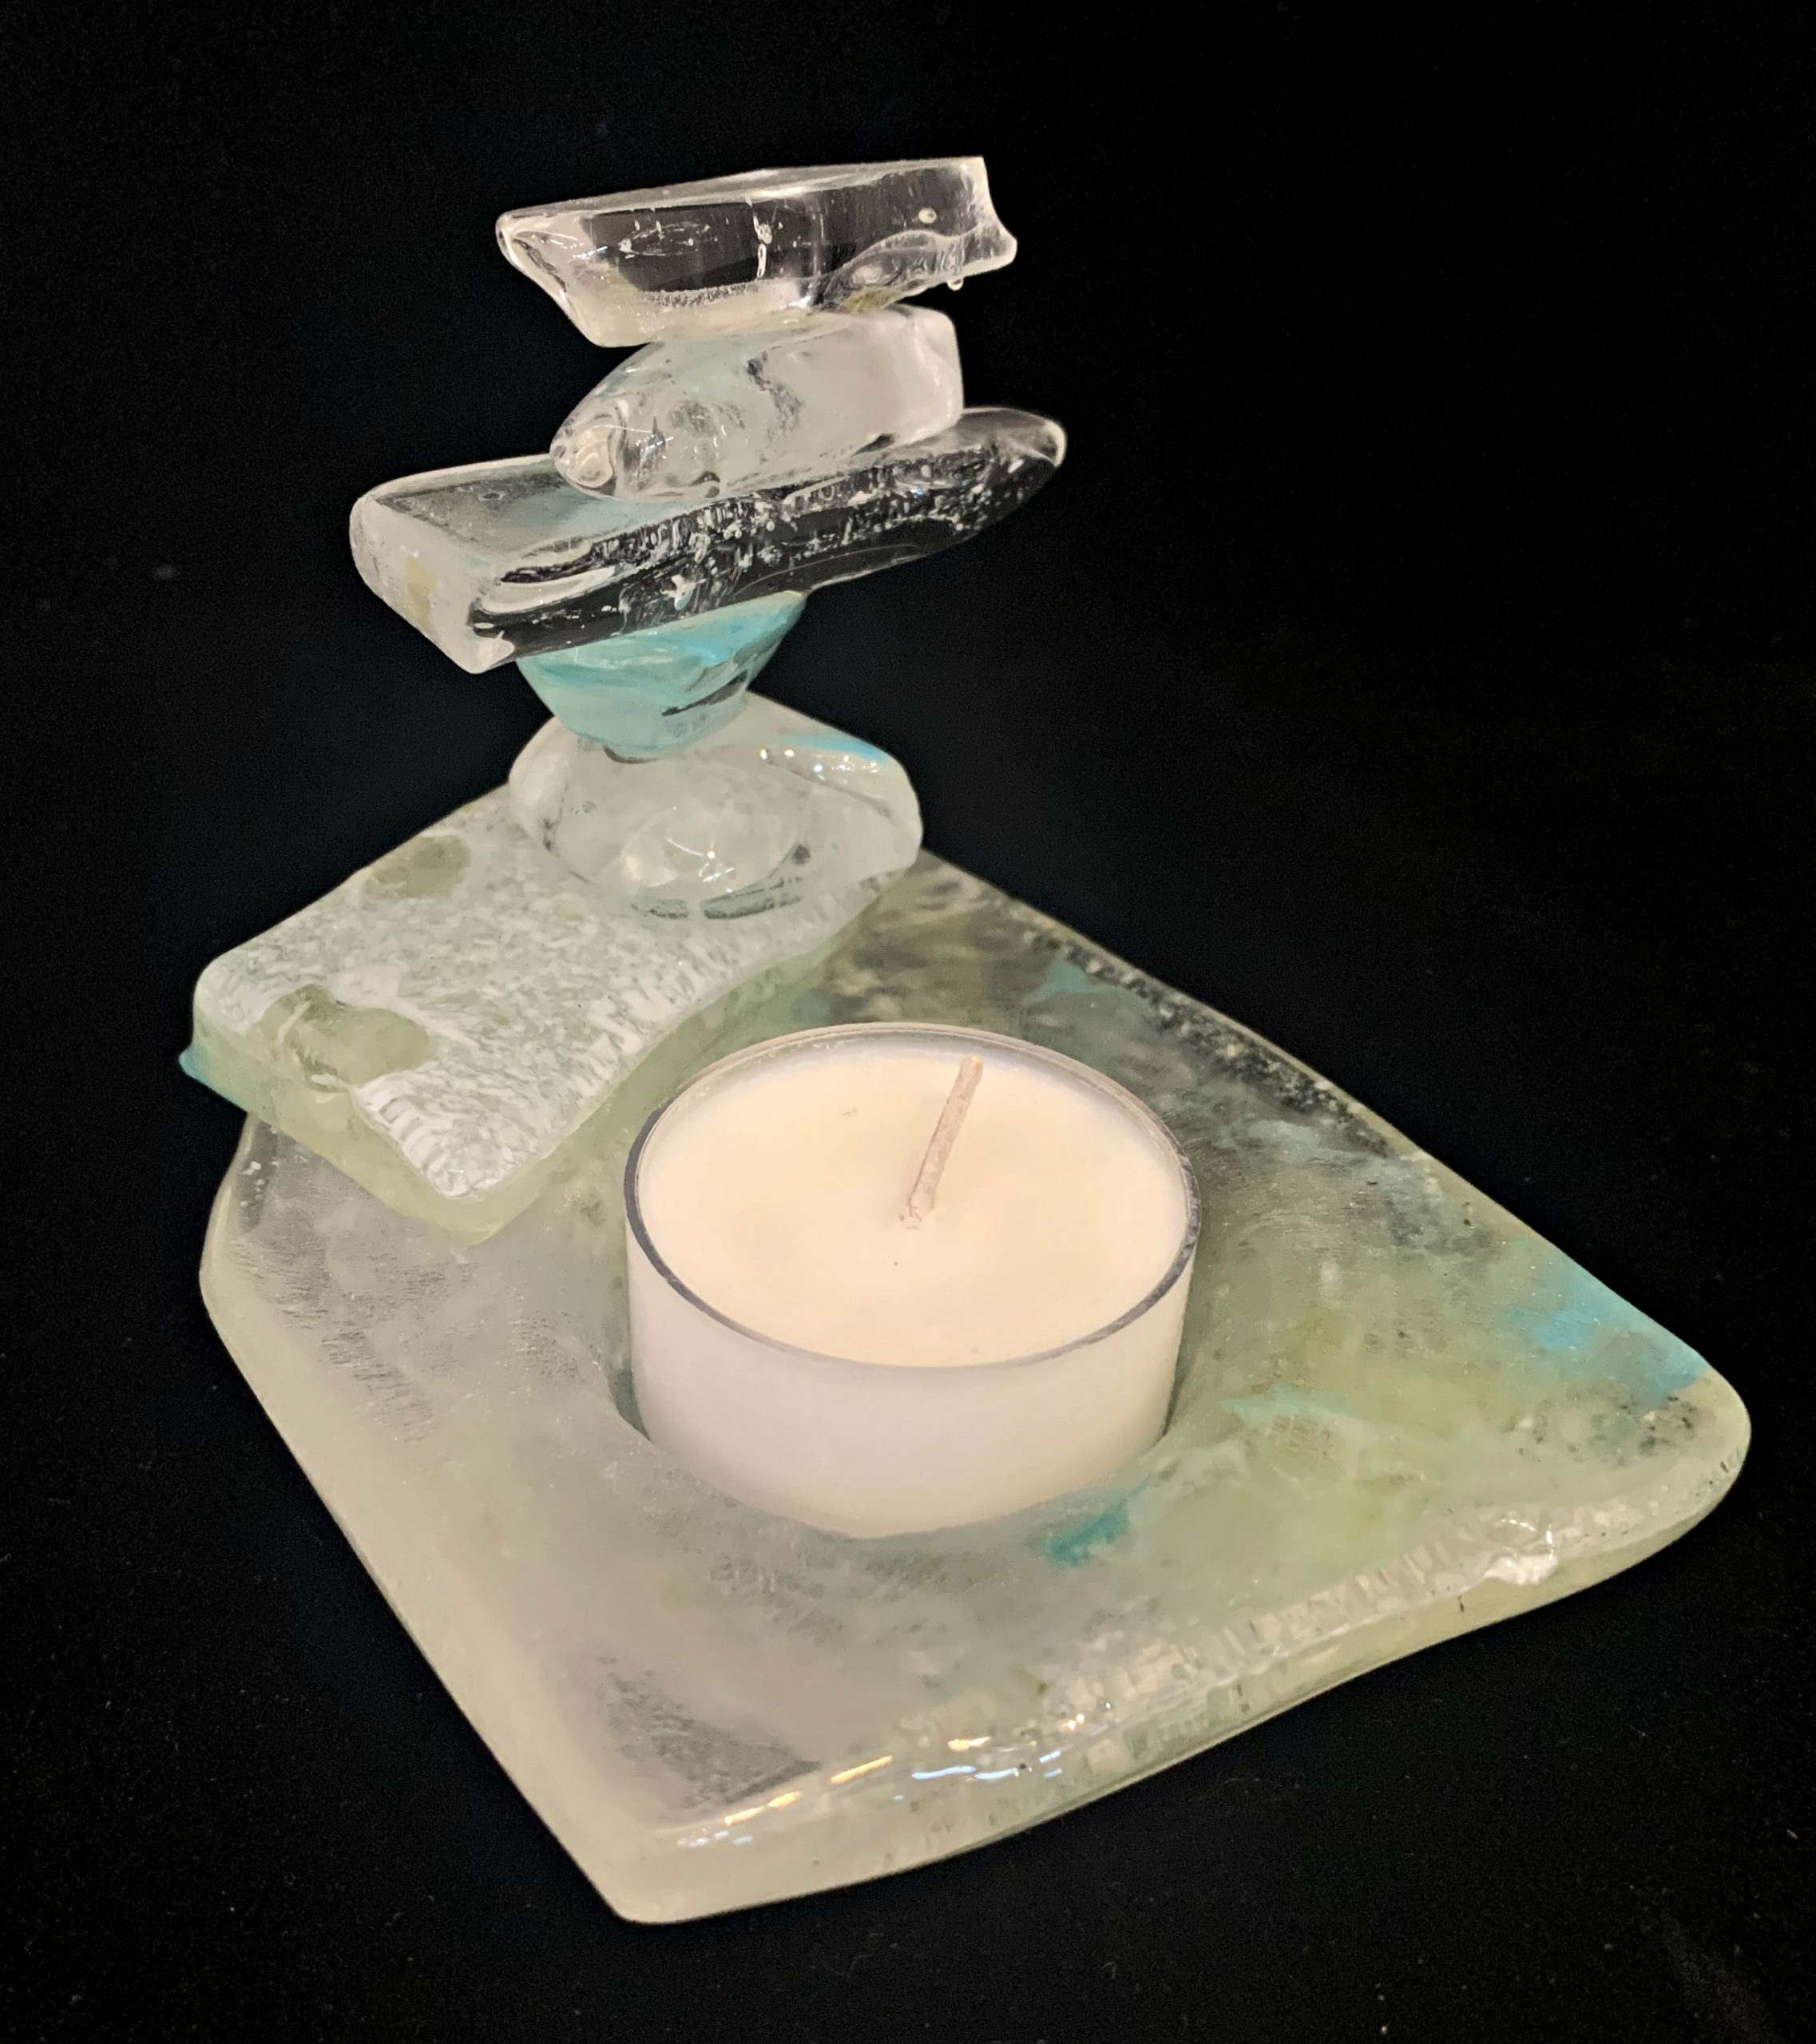 Cast Glass Rocky Mountain Cairn 36 tea light holder by Heather Cuell | Effusion Art Gallery + Cast Glass Studio, Invermere BC